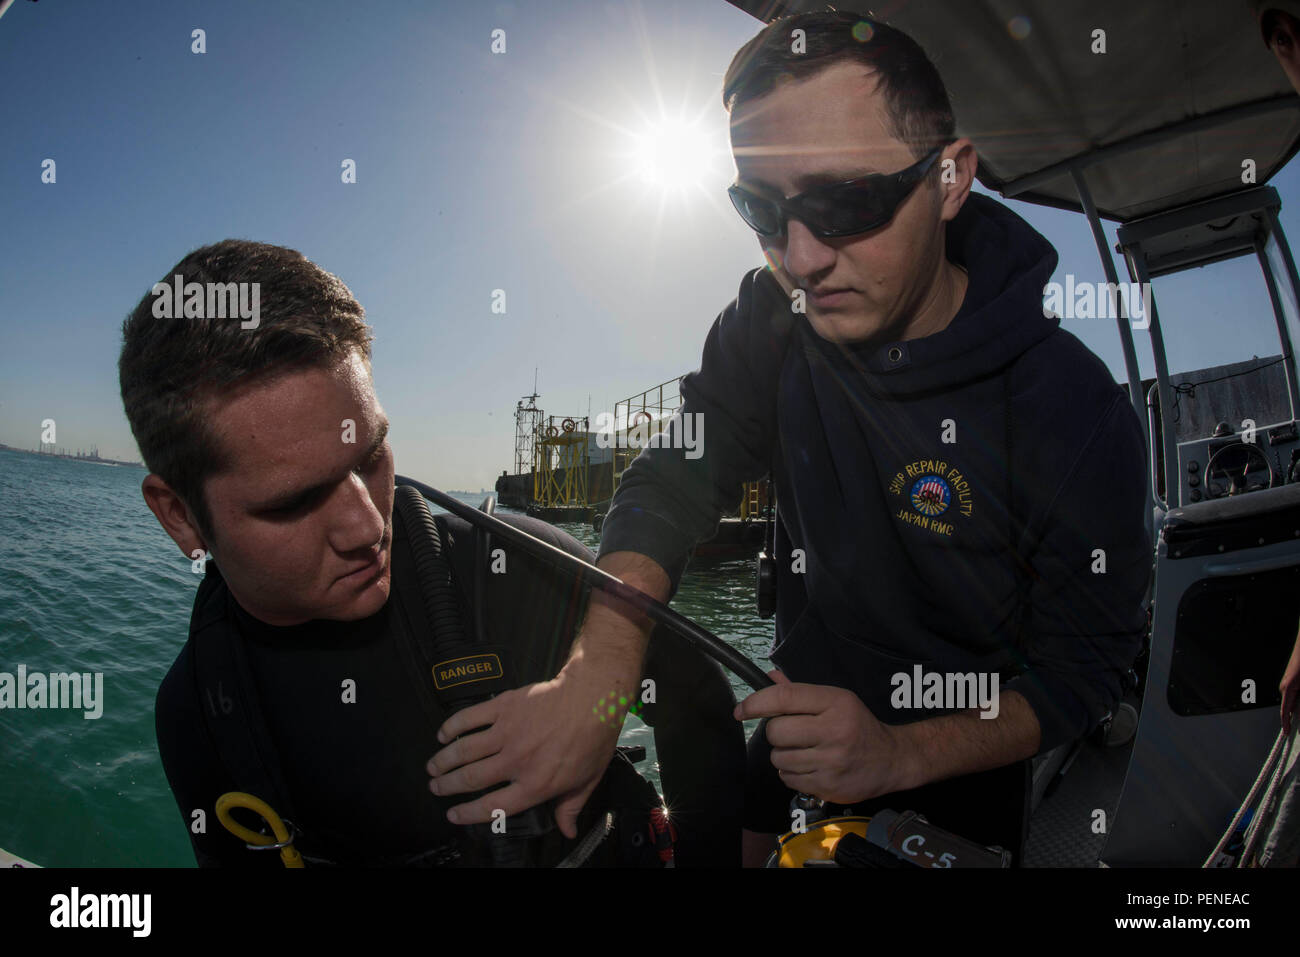 160106-N-BJ294-026 NAVAL SUPPORT ACTIVITY BAHRAIN (Jan. 6, 2016) Navy Diver 1st Class Scott Colvin conducts gear checks on Navy Diver 3rd Class Dakota Helm, assigned to Commander, Task Group (CTG) 56.1, prior to conducting an anti-terrorism force protection dive. CTG 56.1 conducts mine countermeasures, explosive ordnance disposal, salvage-diving and force protection operations throughout the U.S. 5th Fleet area of operations. (U.S. Navy Combat Camera photo by Mass Communication Specialist 2nd Class Wyatt Huggett/Released) - Stock Image